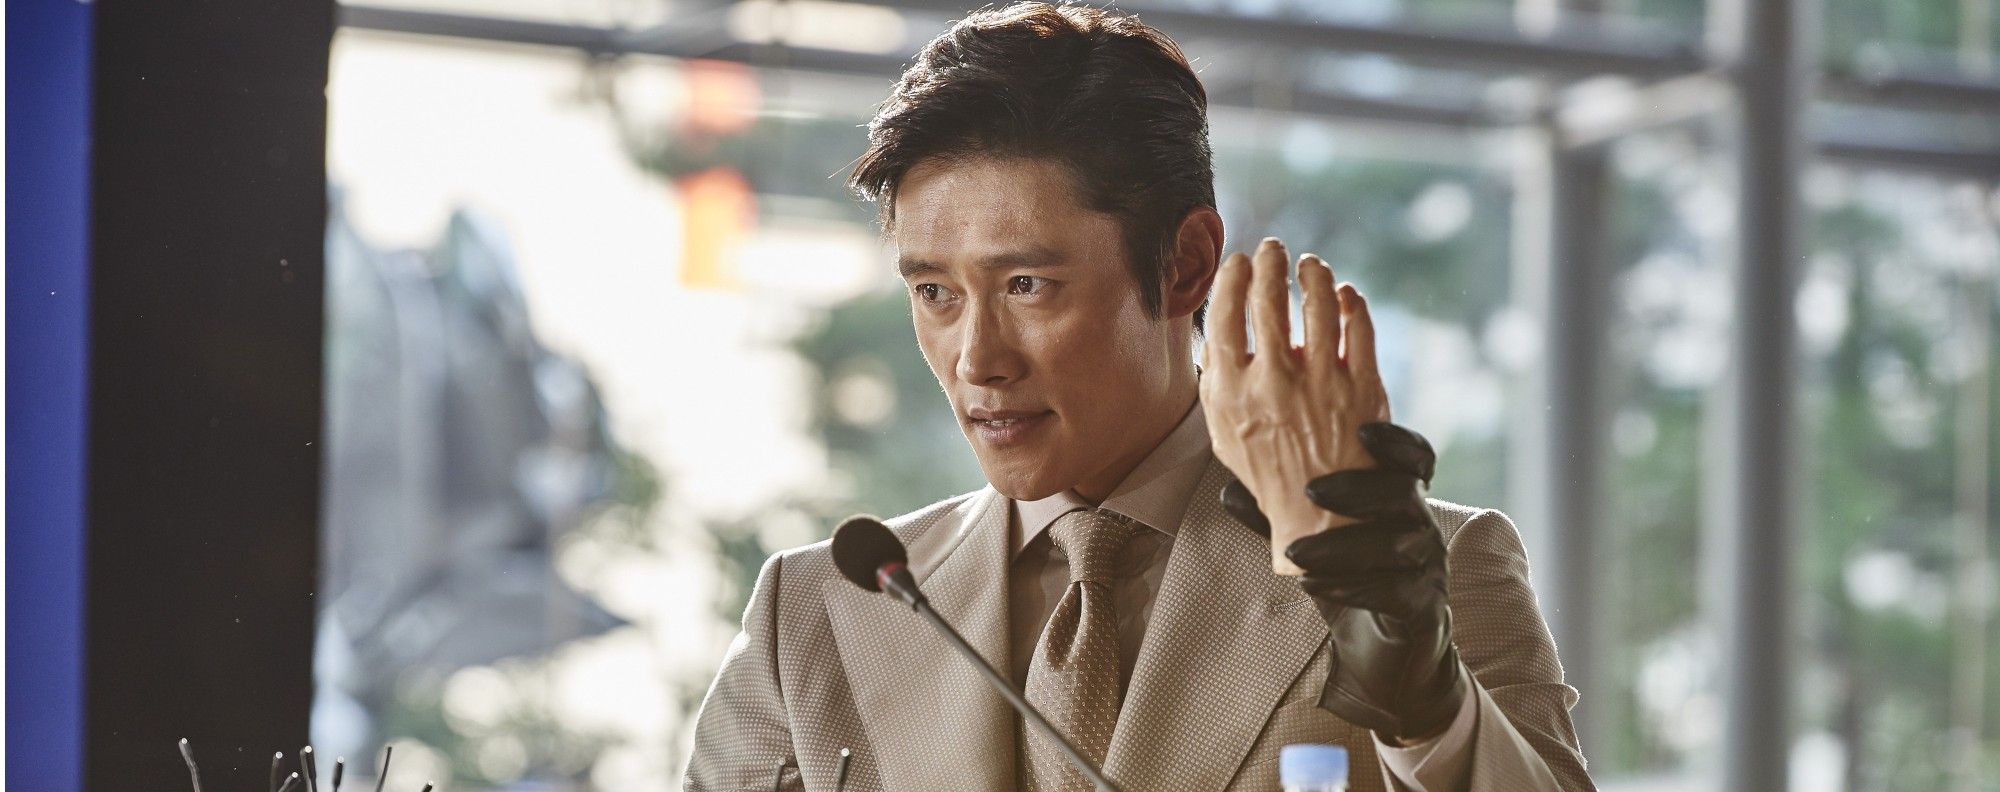 Lee Byung-hun playing a political henchman out for revenge in Inside Men.